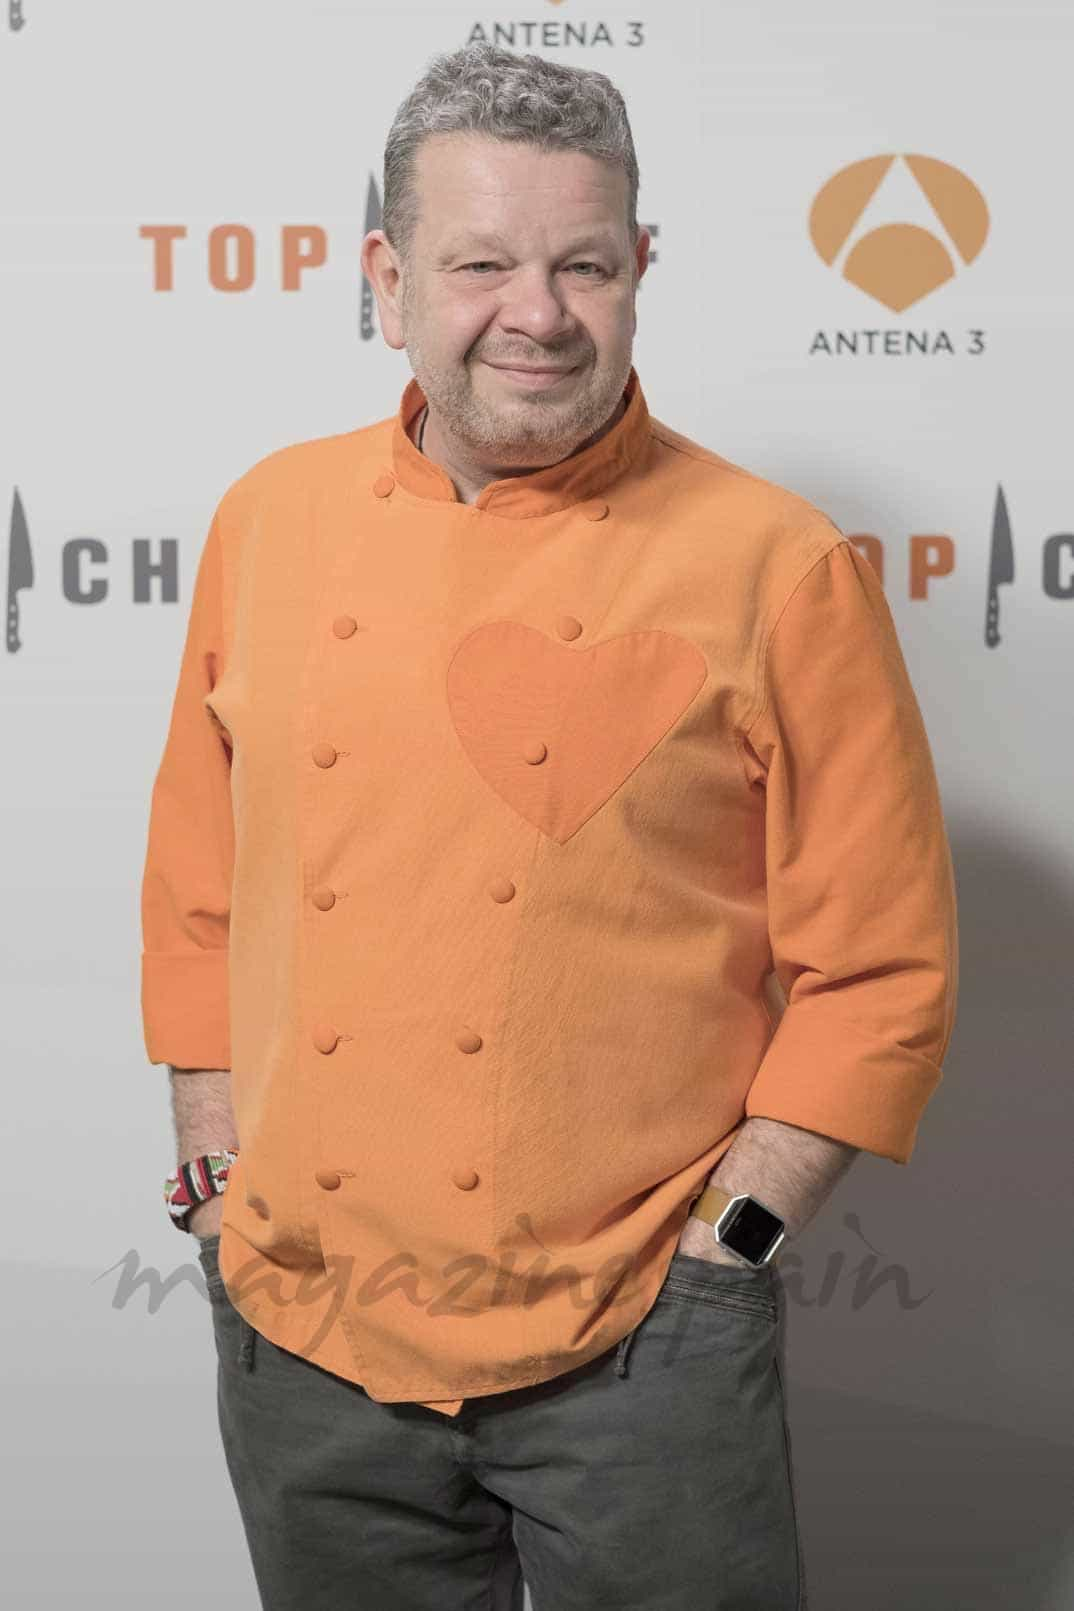 Cocina Top Chef Chicote Vuelve Hoy A Top Chef Magazinespain